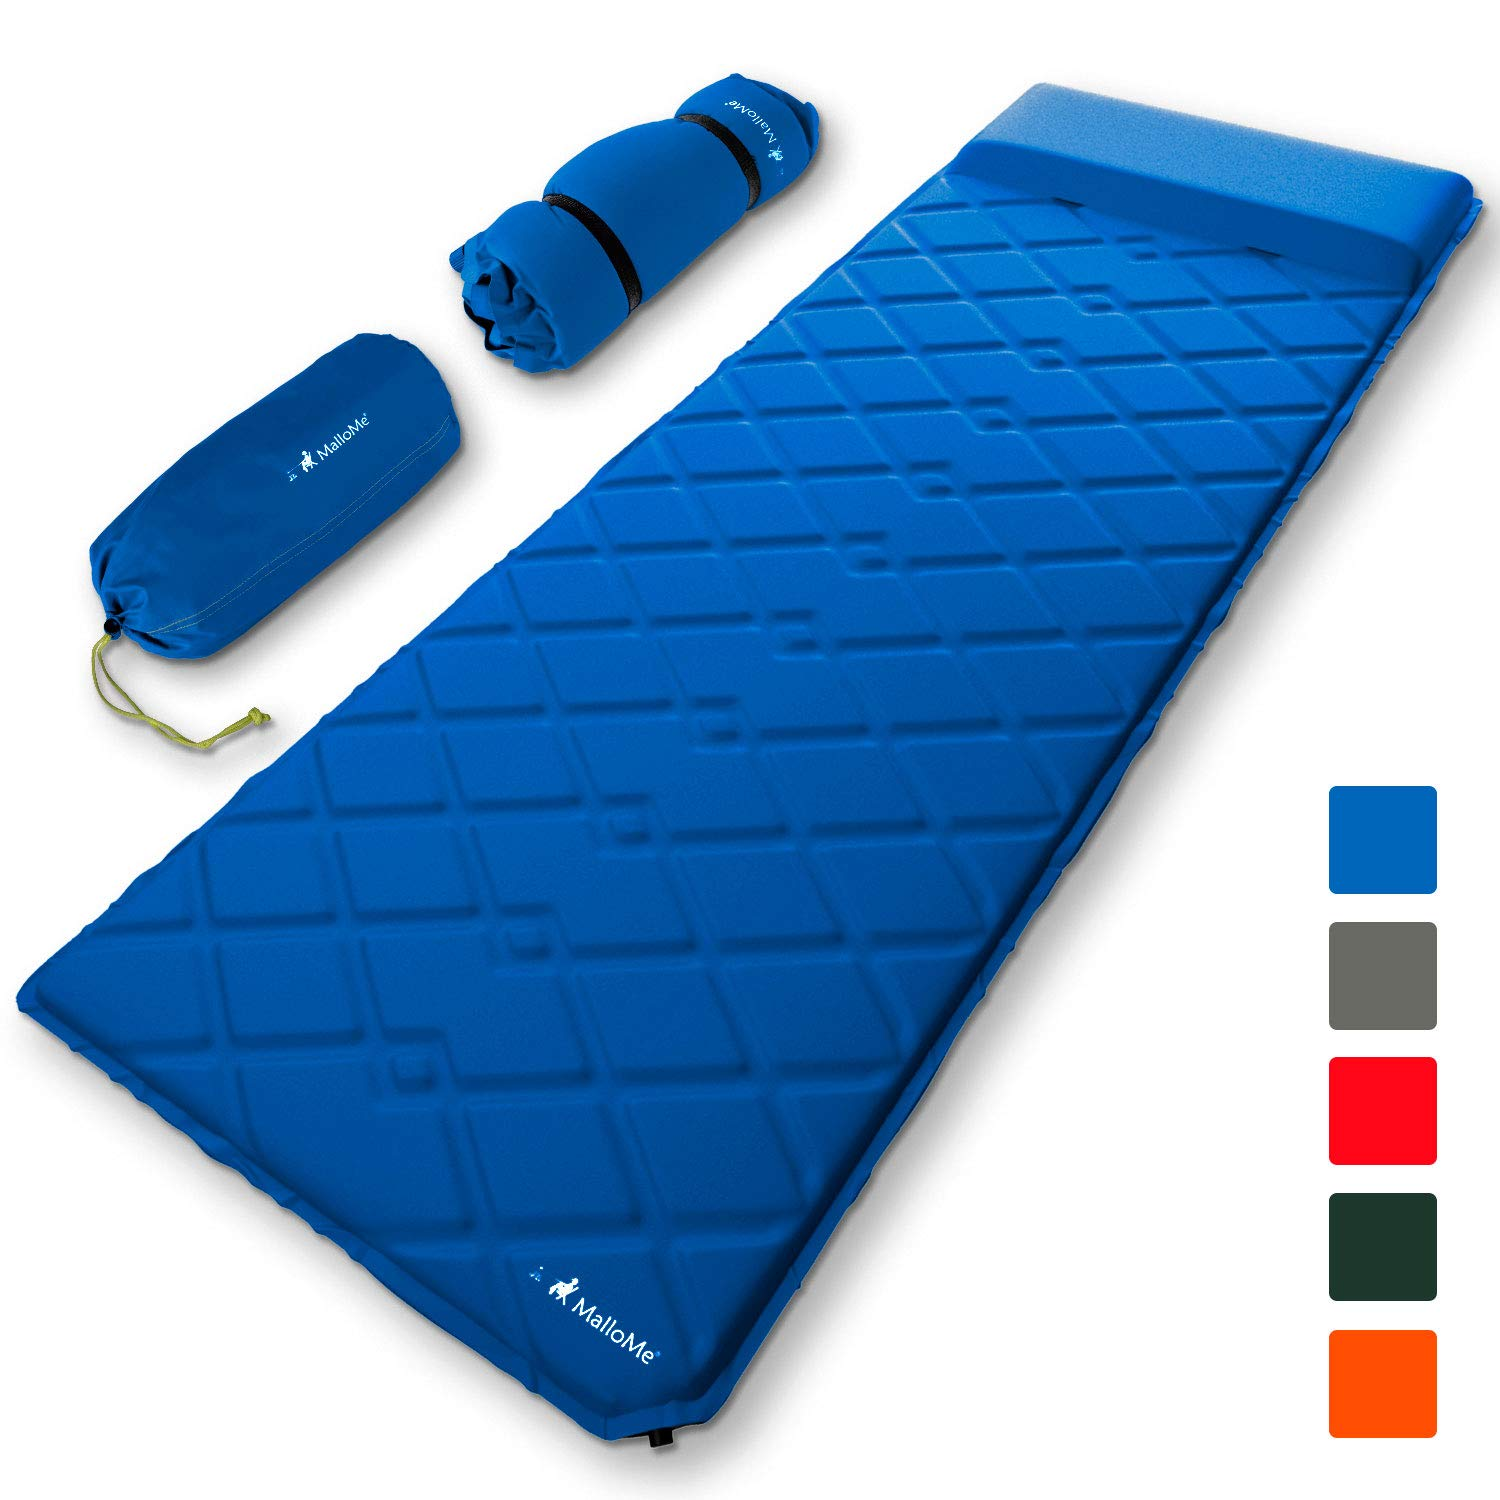 MalloMe Sleeping Pad Camping Air Mattress - Self Inflating Mat Bed for Backpacking Adults - Inflatable Ultralight Insulated Soft Foam Sleep Gear - Lightweight Travel Cot Roll Mats Accessories Blue by MalloMe